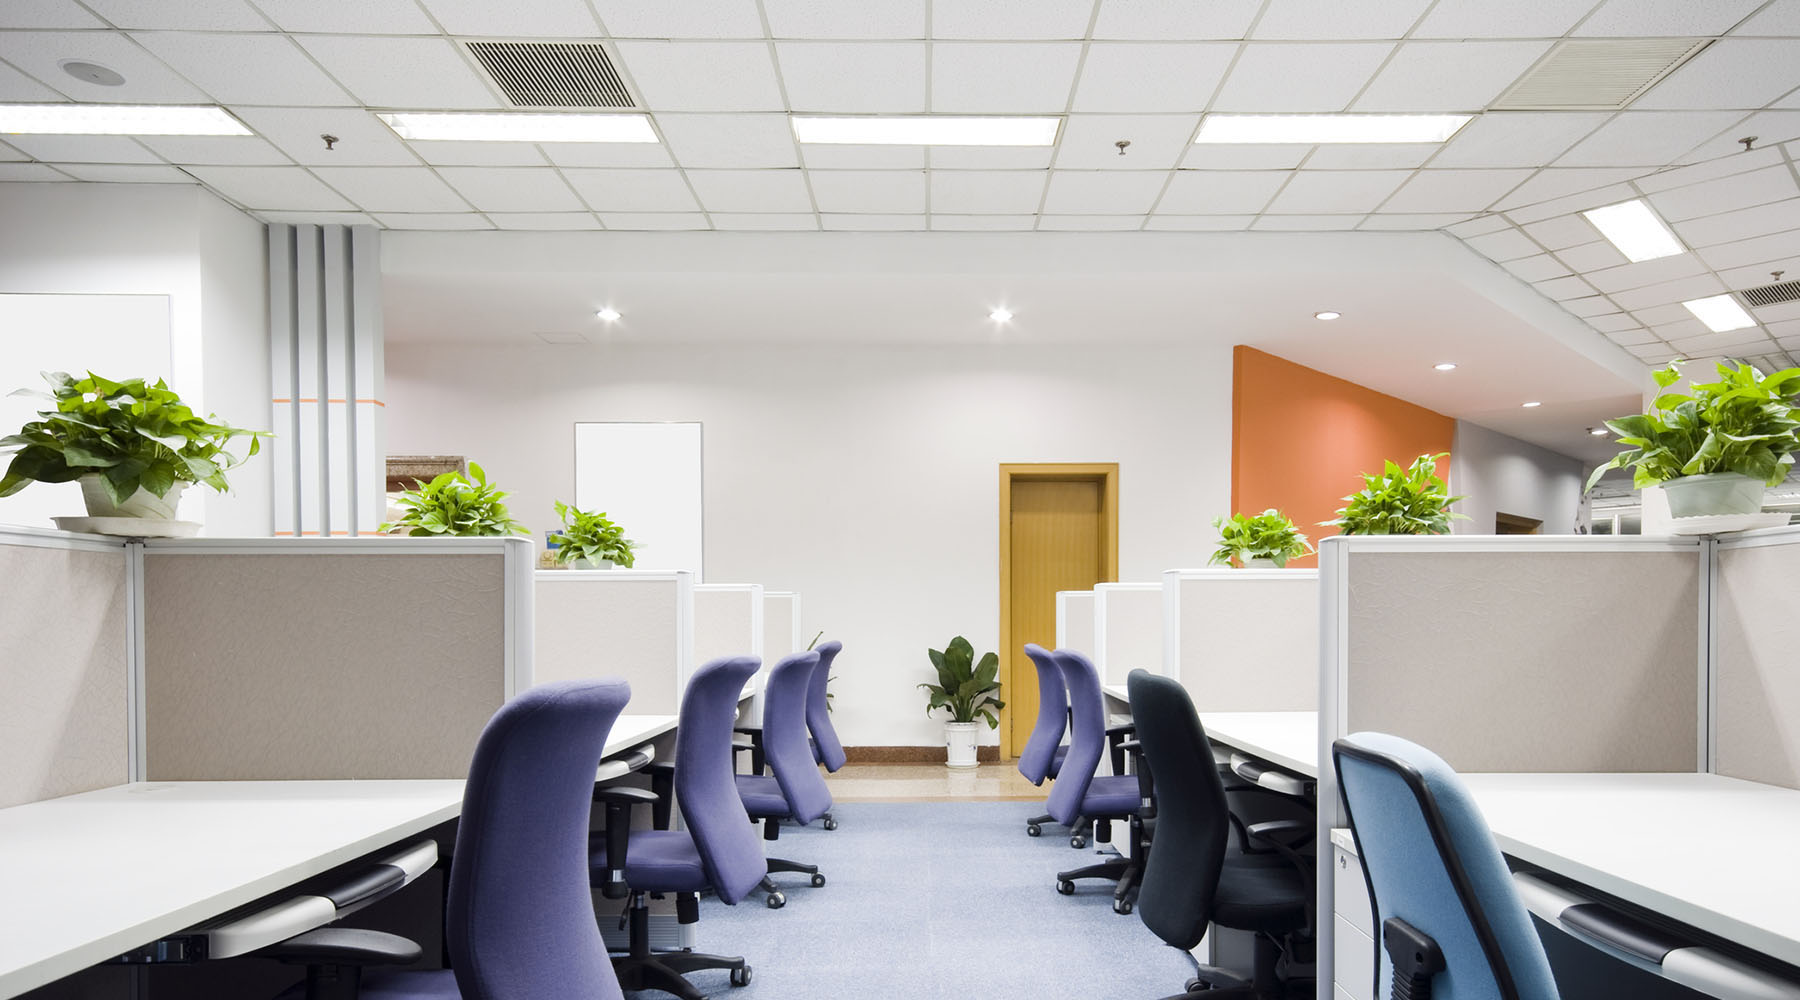 Suspended Ceiling Installation Dublin | Clean Office with Suspended Ceiling | Kehoe Suspended Ceilings